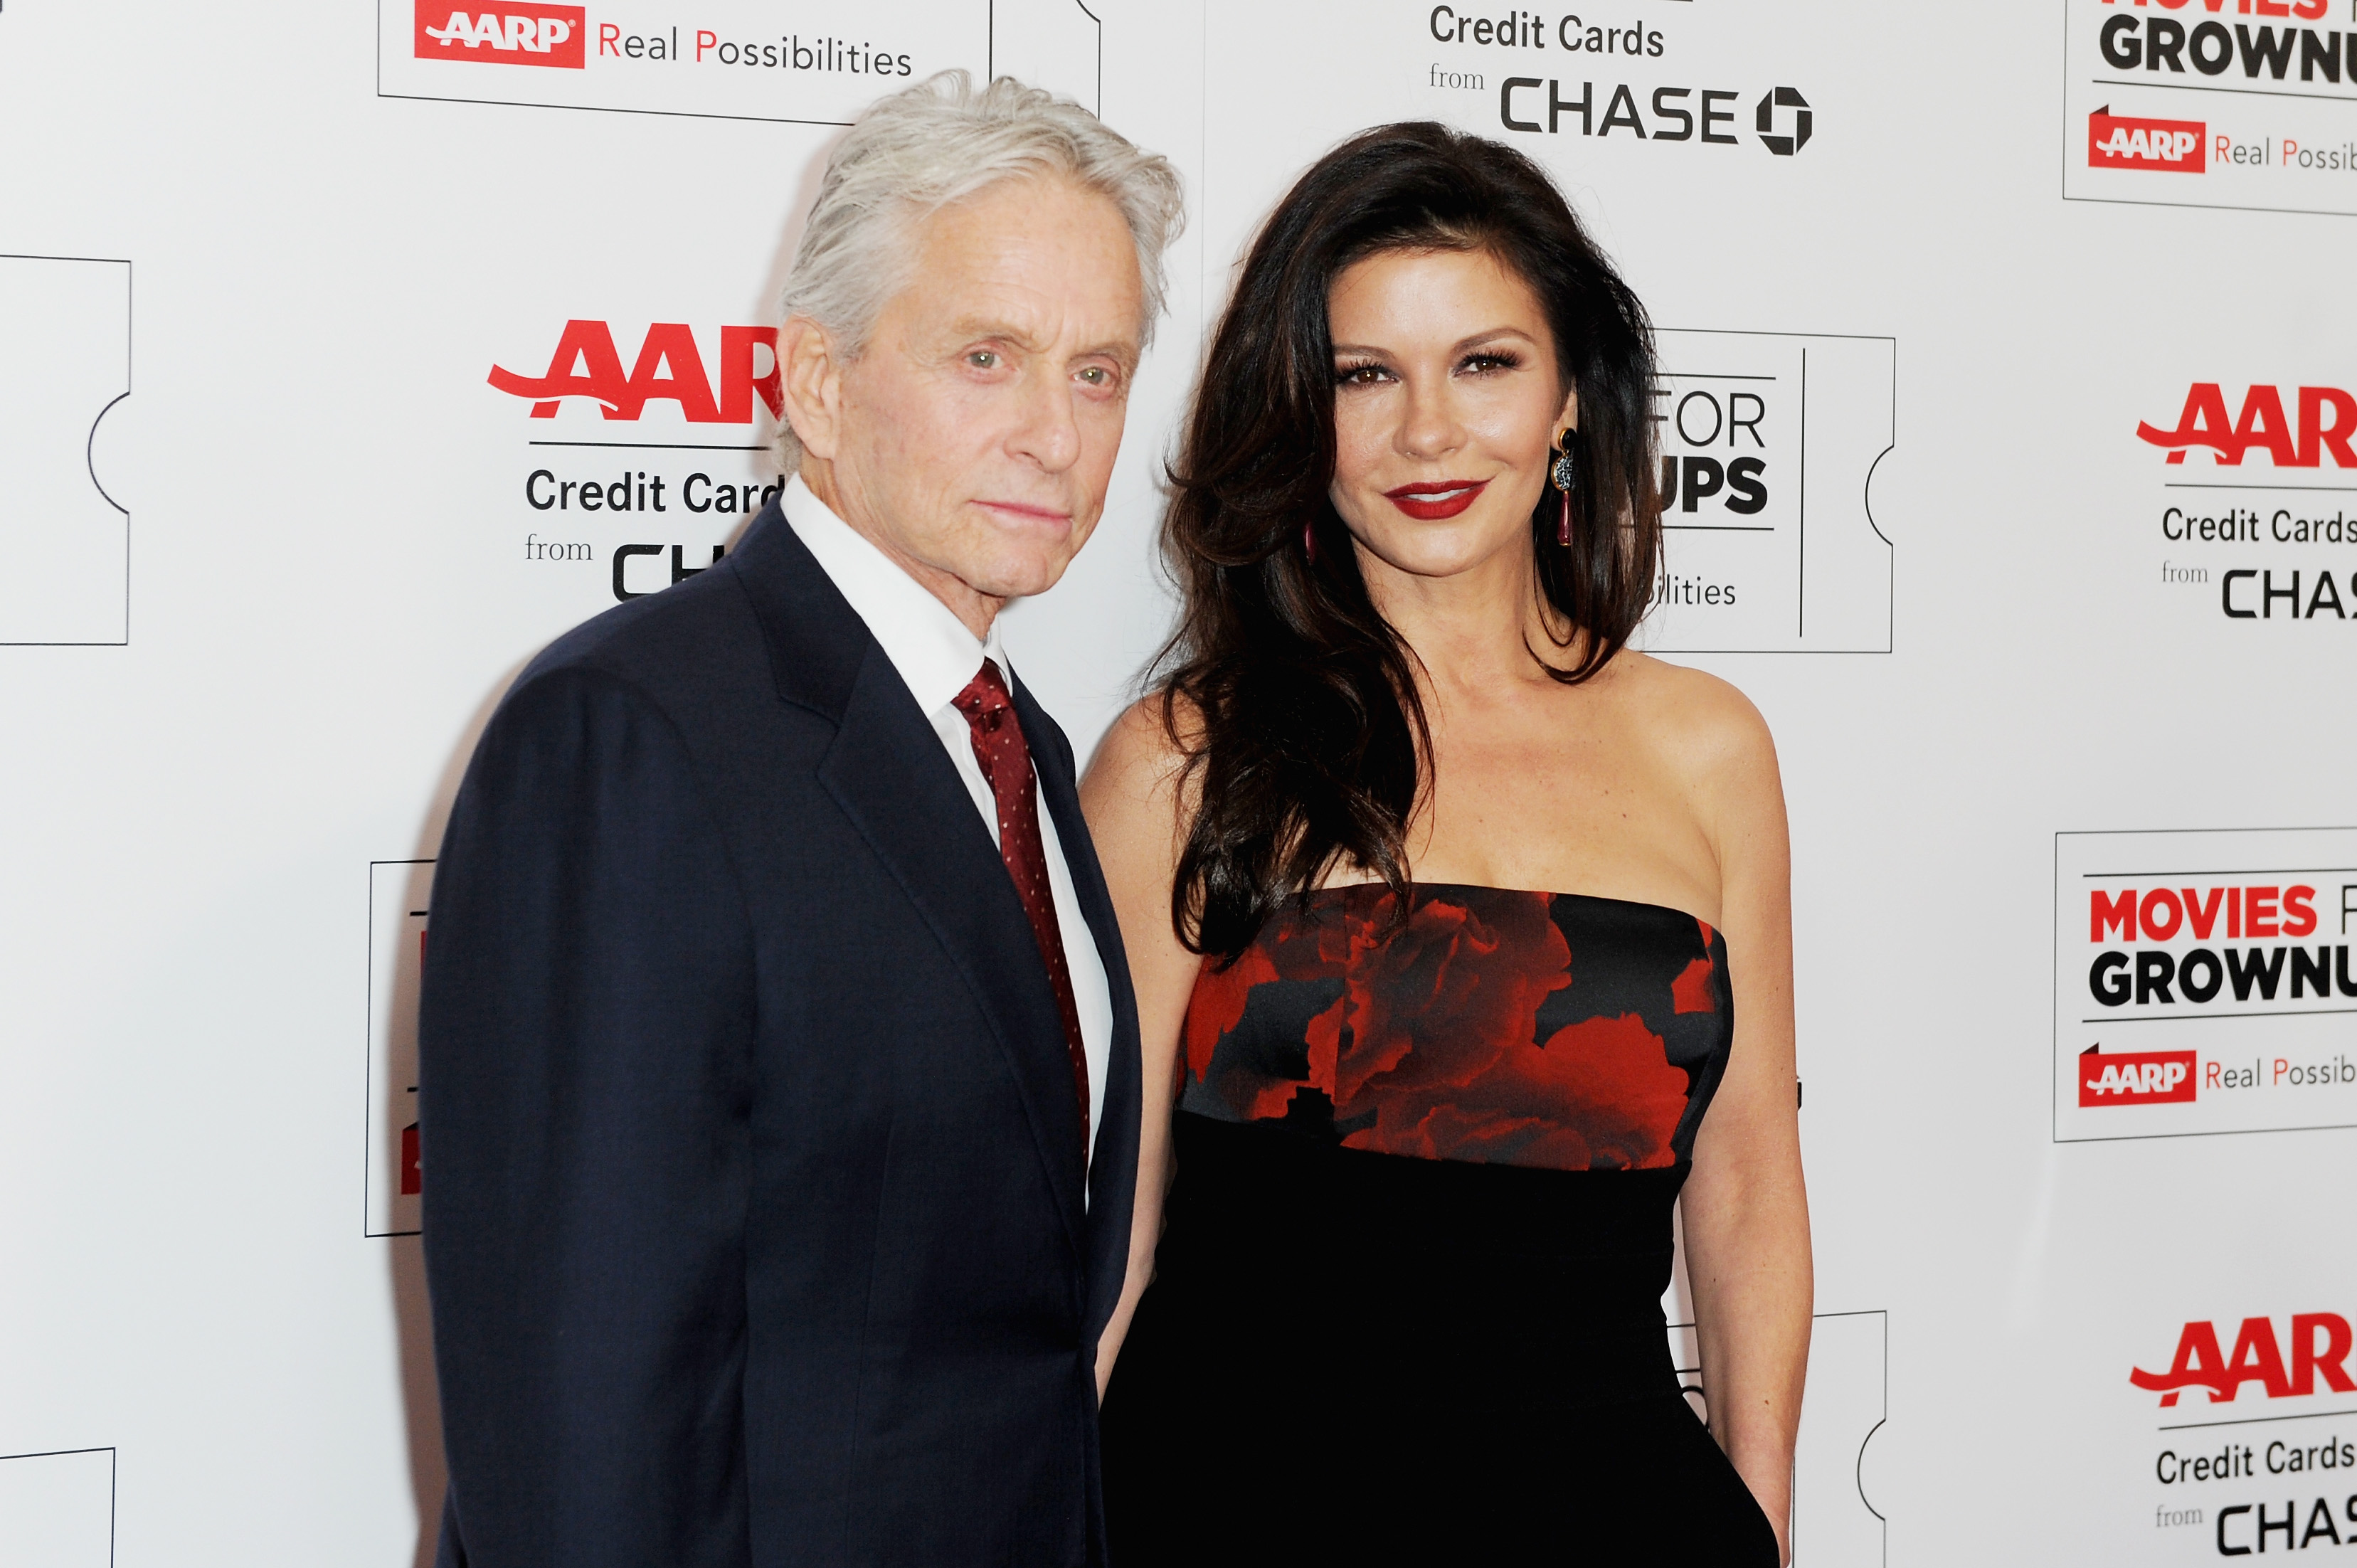 Michael Douglas and Catherine Zeta-Jones attend AARP's 15th Annual Movies For Grownups Awards at the Beverly Wilshire Four Seasons Hotel on February 8, 2016 in Beverly Hills